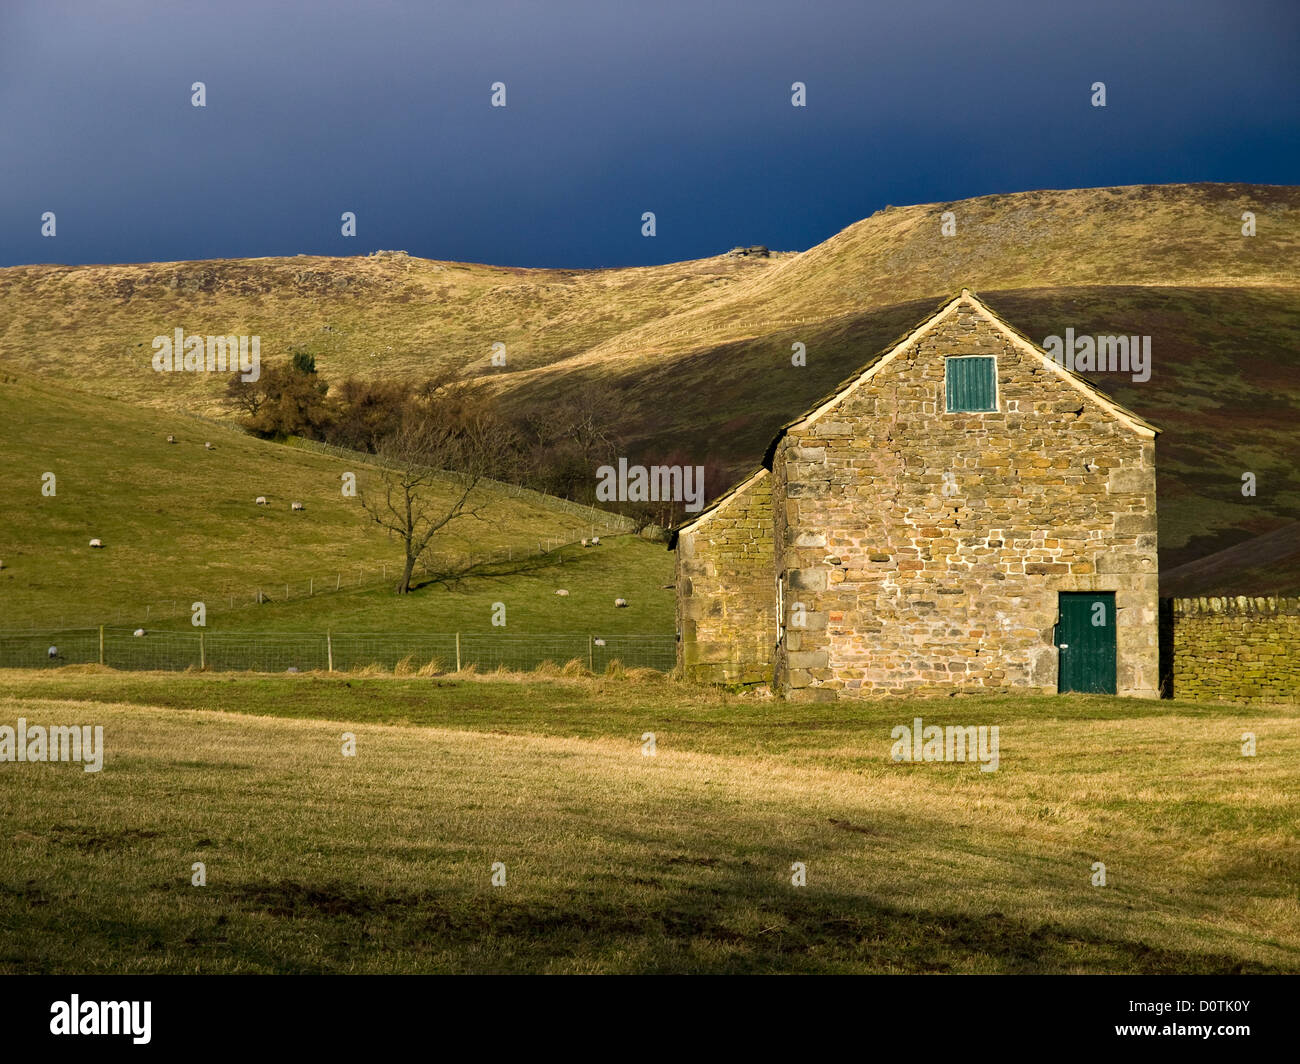 A barn below The southern edge of Kinder Scout, Peak District National Park - Stock Image